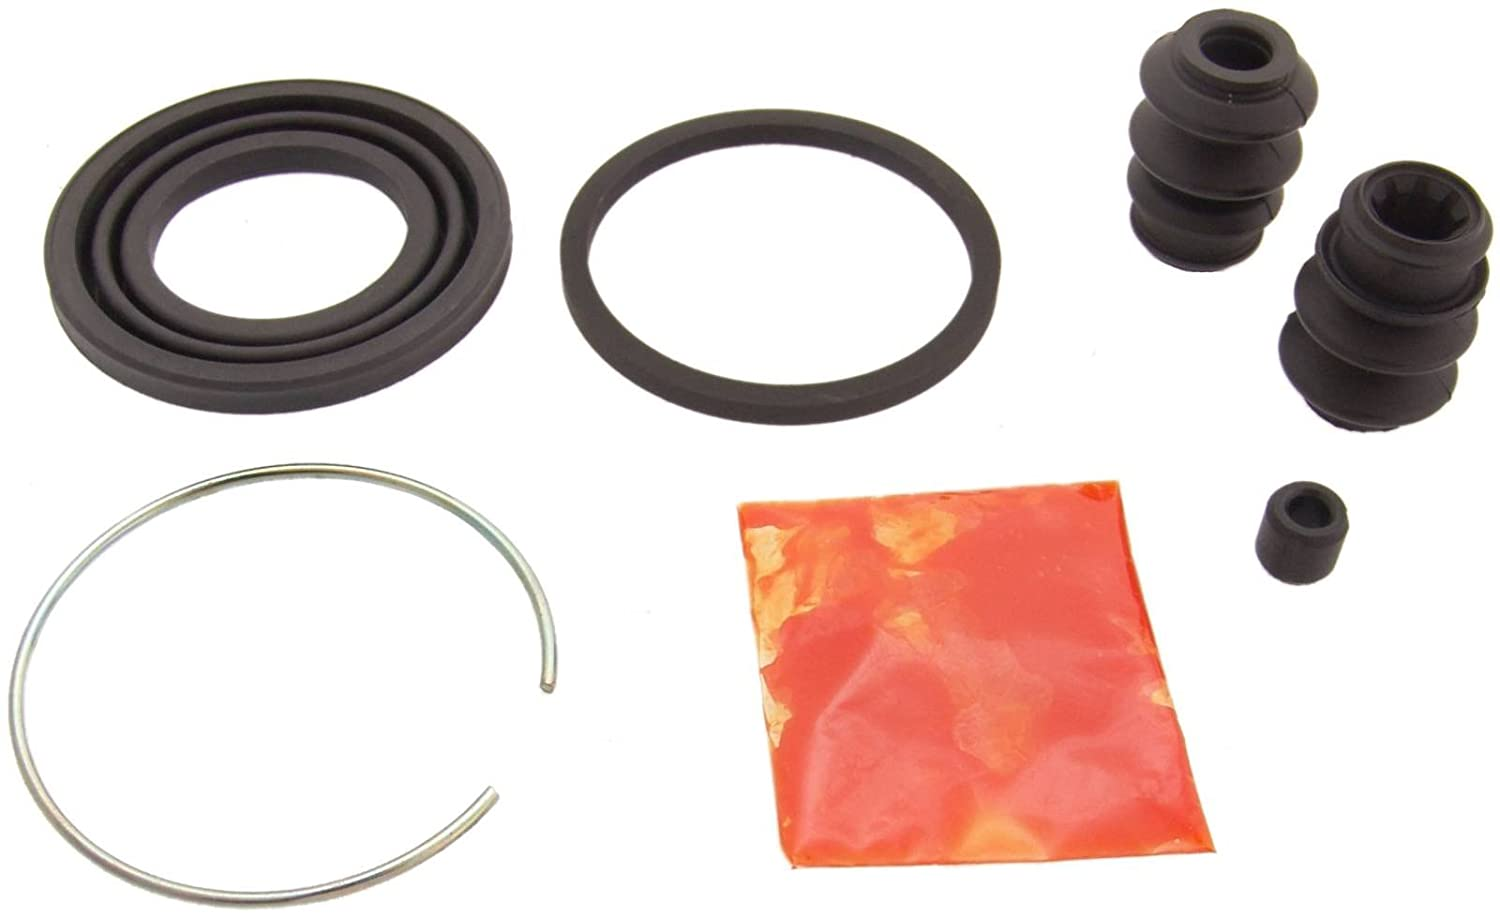 Mb858466 Cylinder Kit For Mitsubishi Mb858466